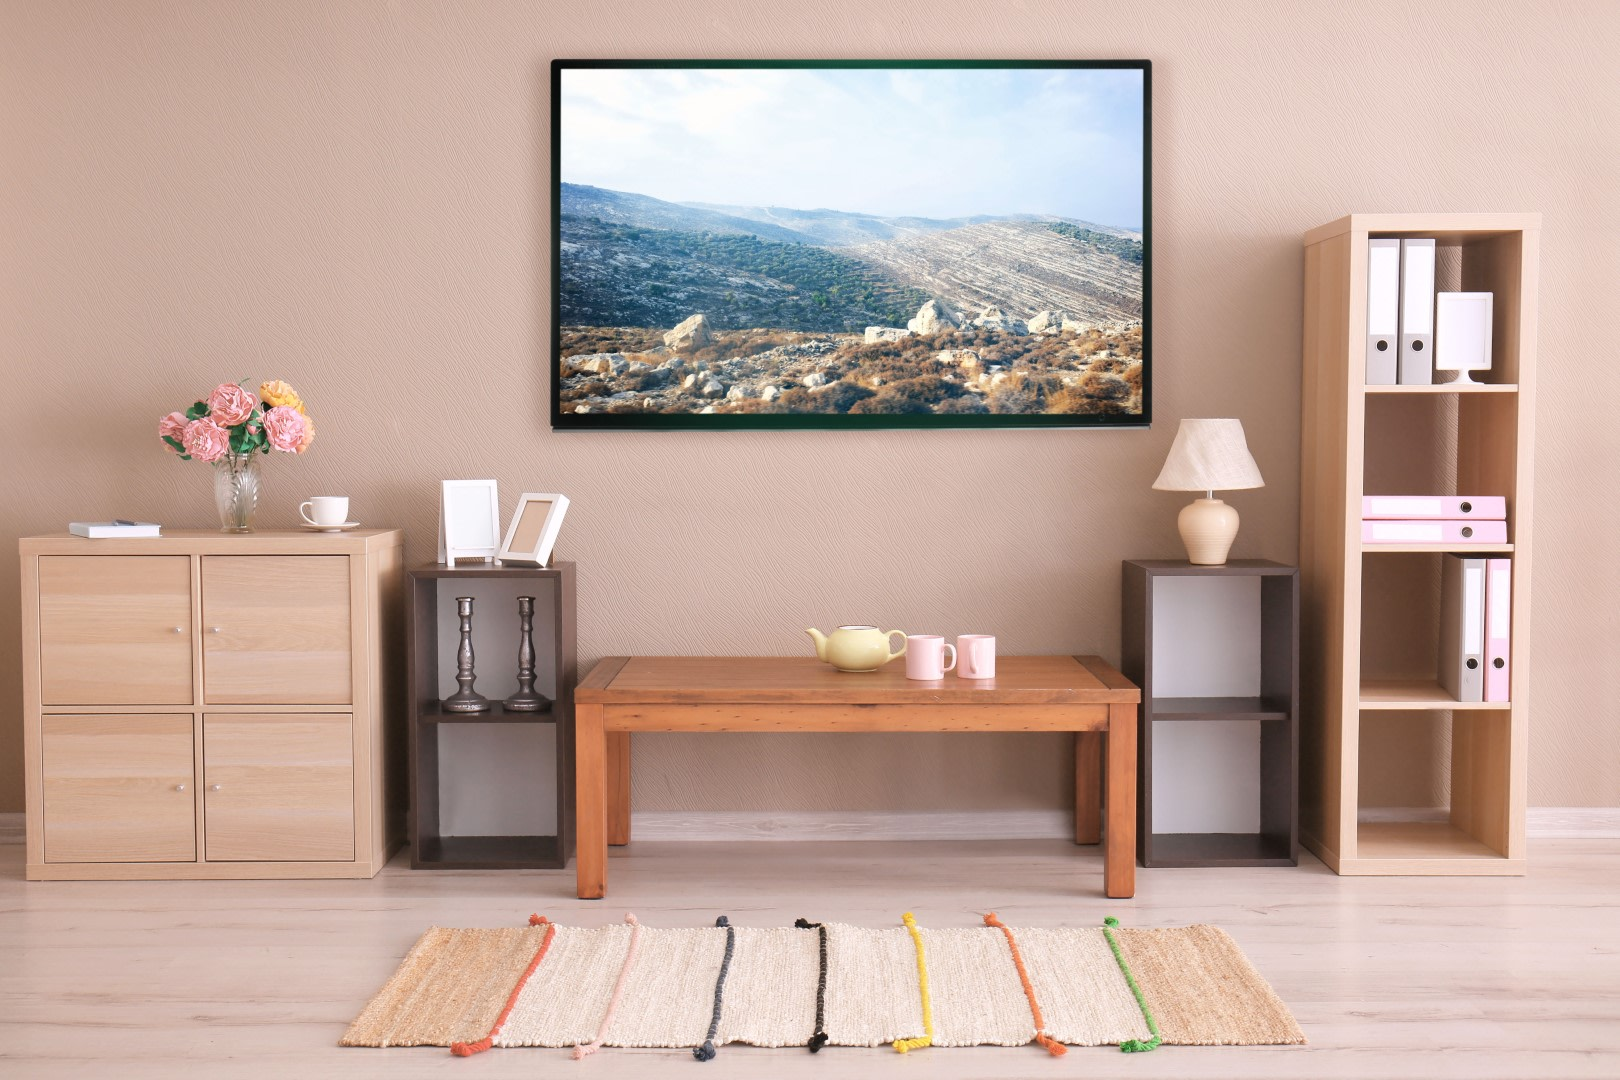 An image related to Best TCL HDR TVs